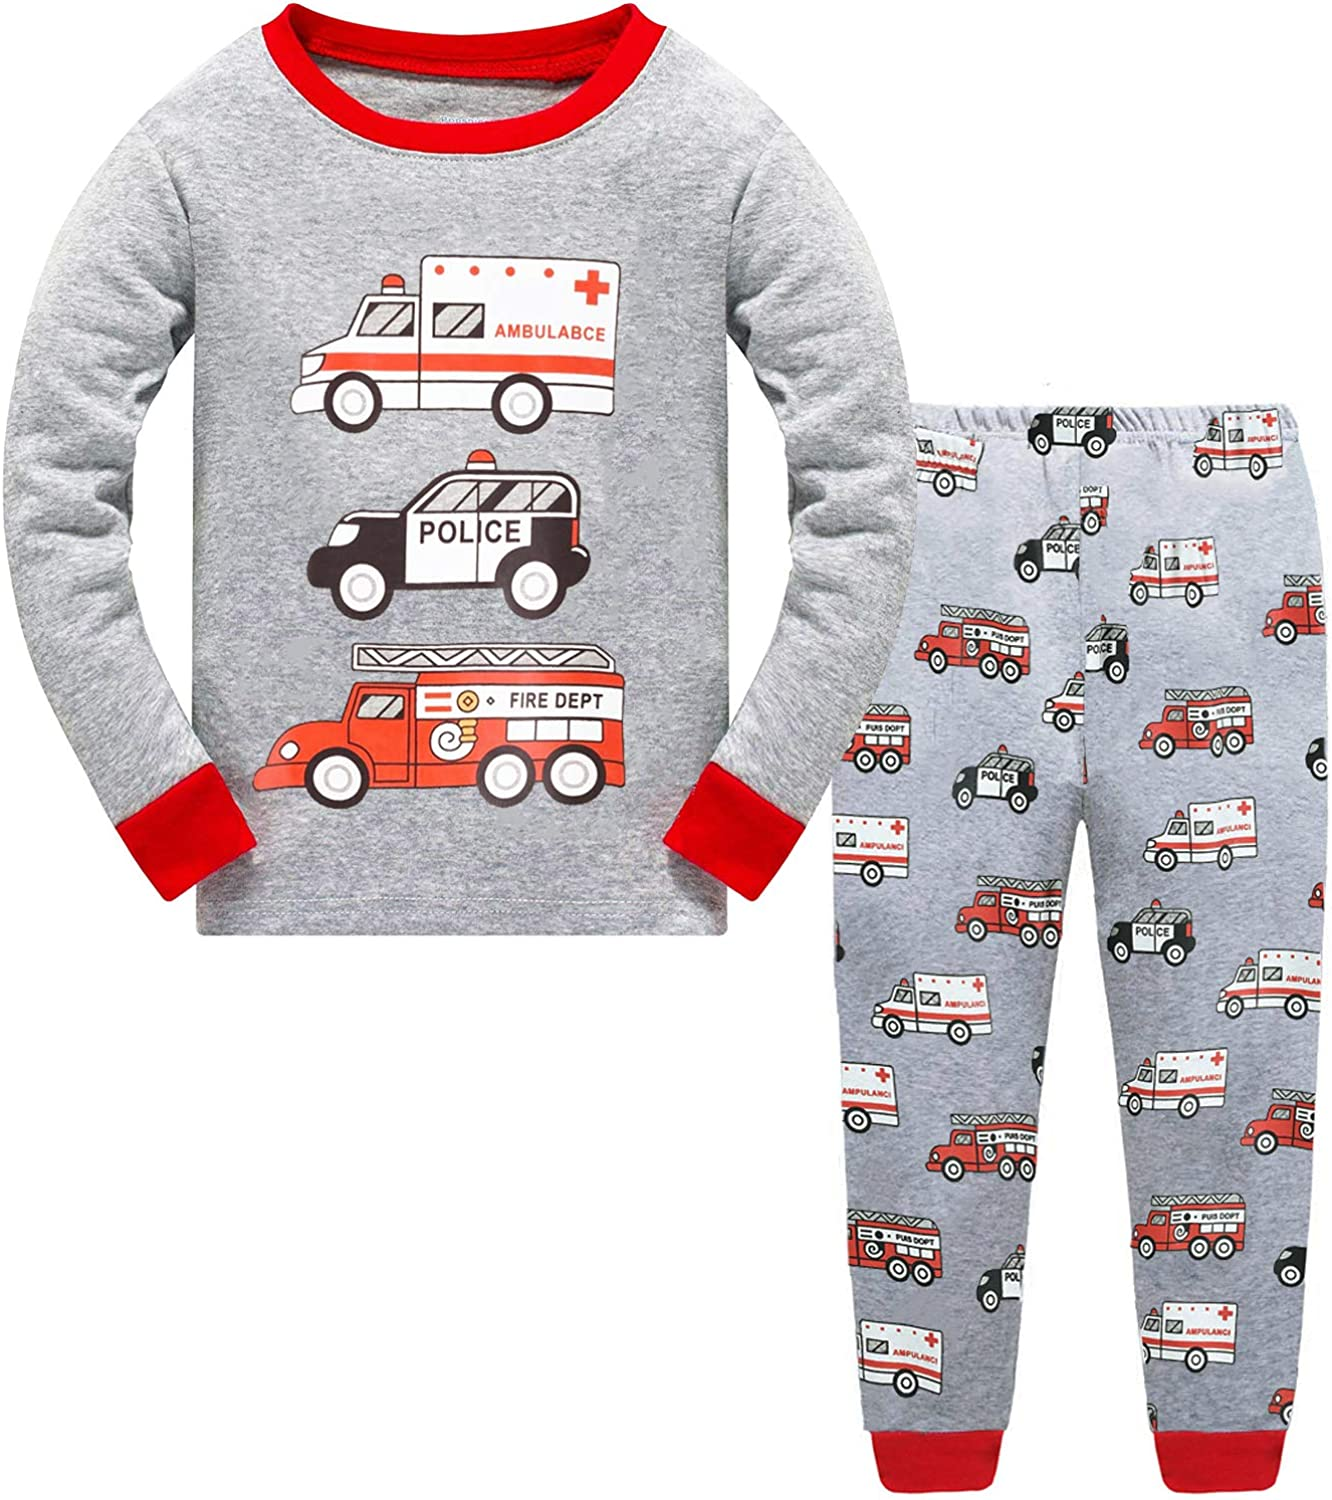 4-5 /& 5-6 years Boys Printed Long Sleeve T shirt Ages 2-3 3-4